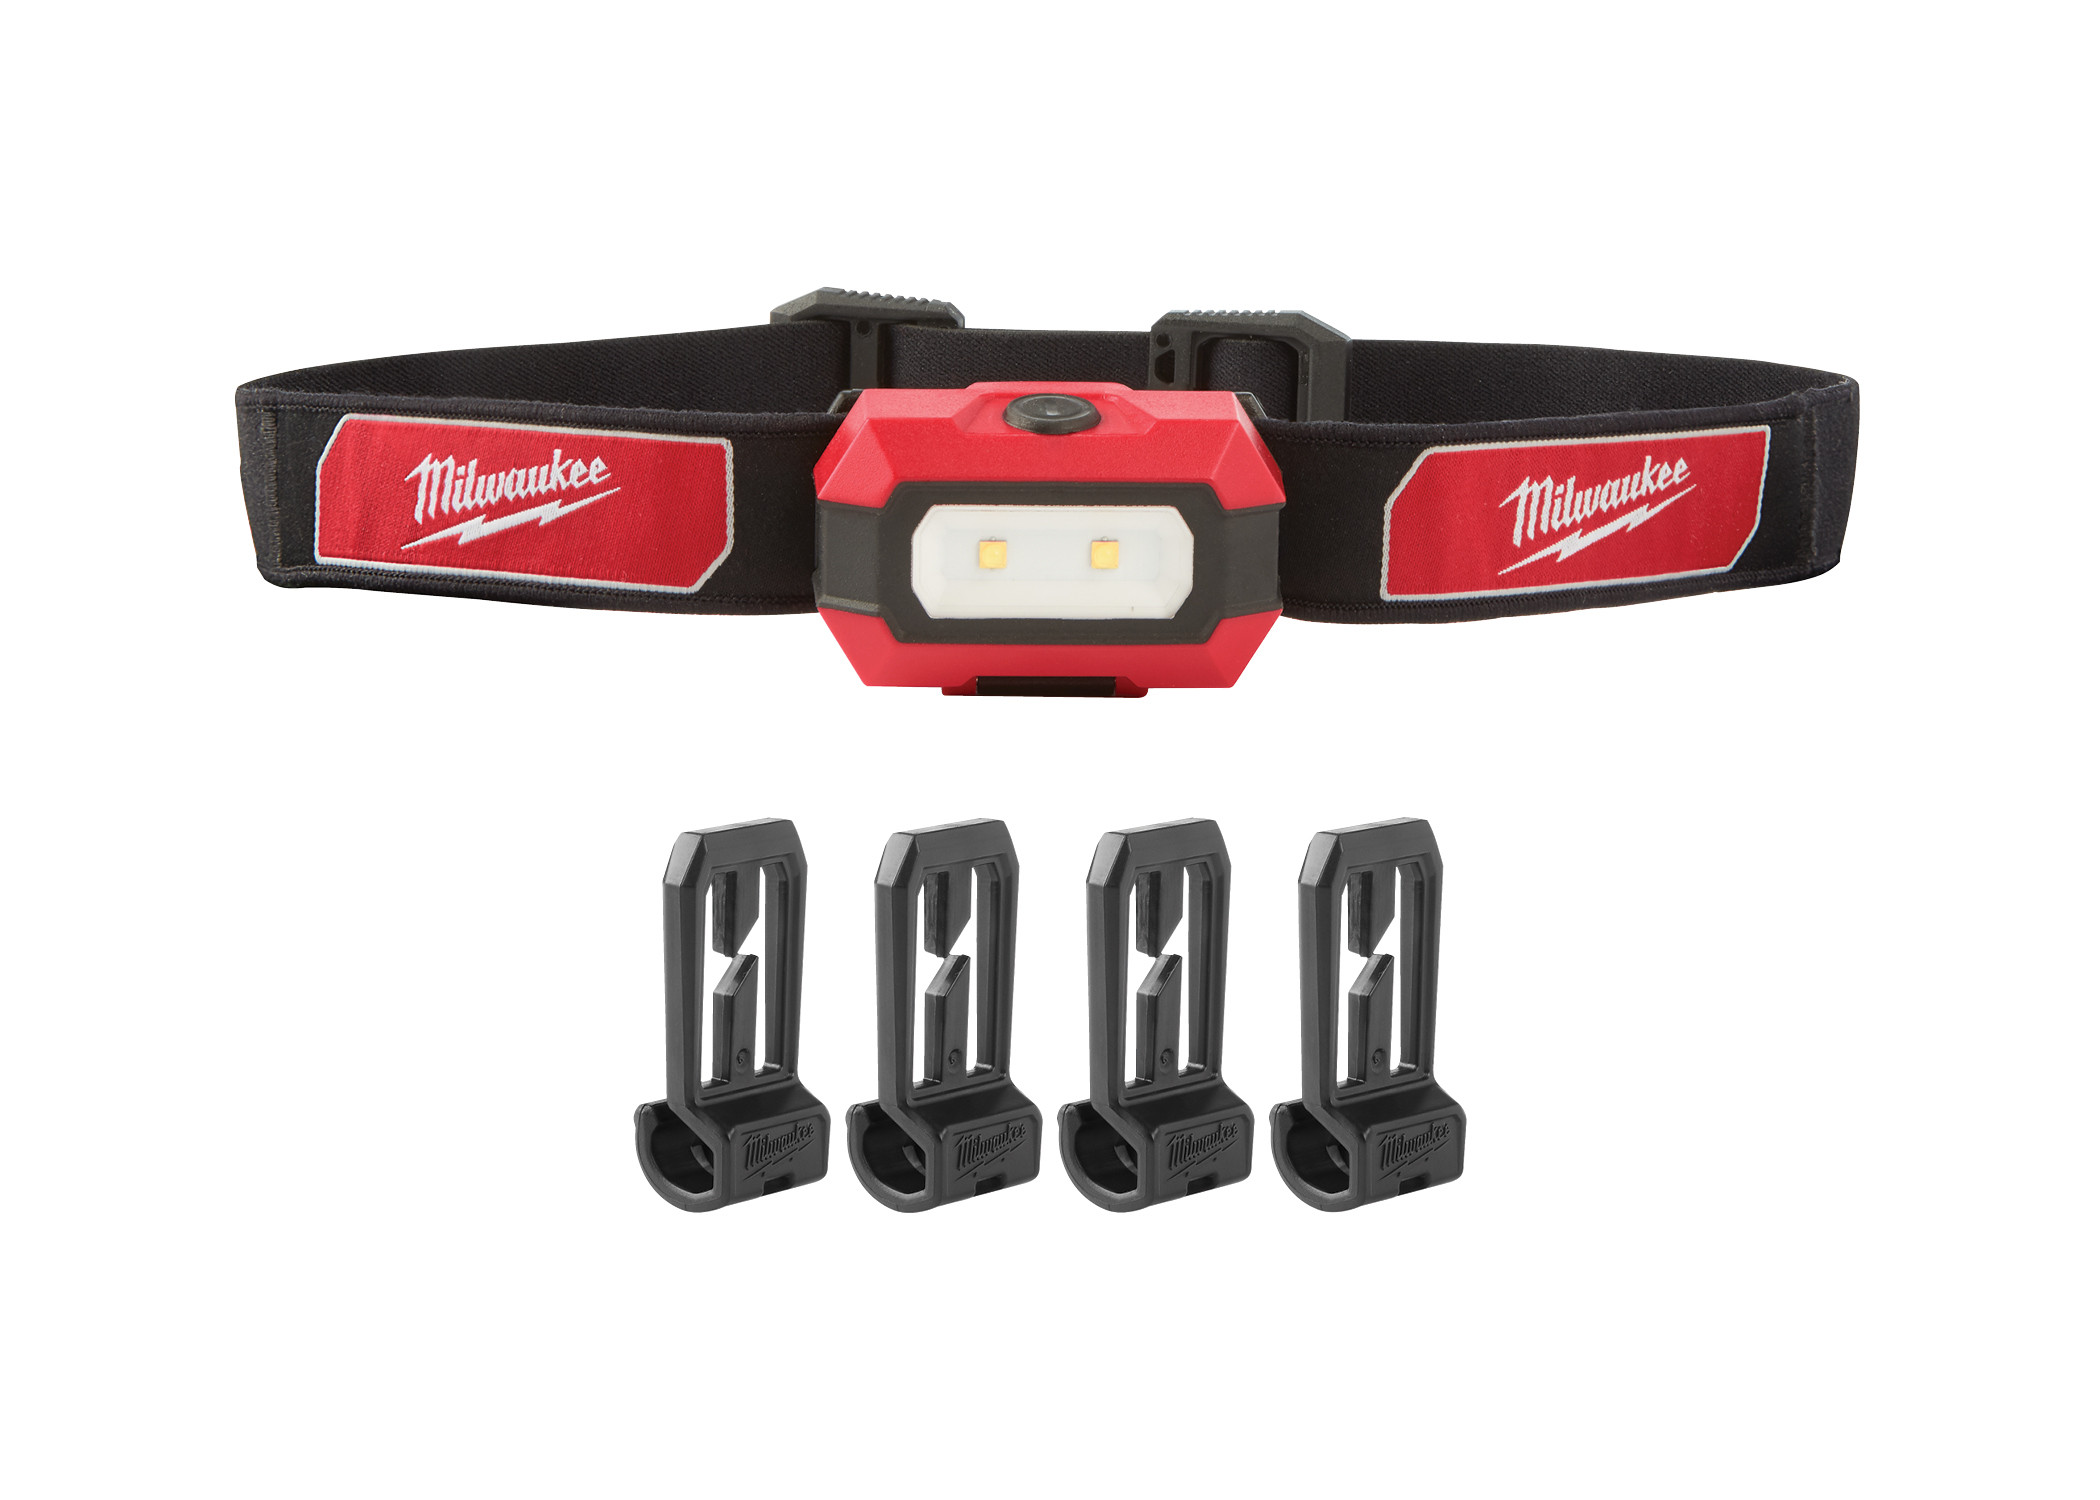 MIL 2103 Includes: Headlamp, Strap, Hard Hat Clips, (3) AAA Batteries